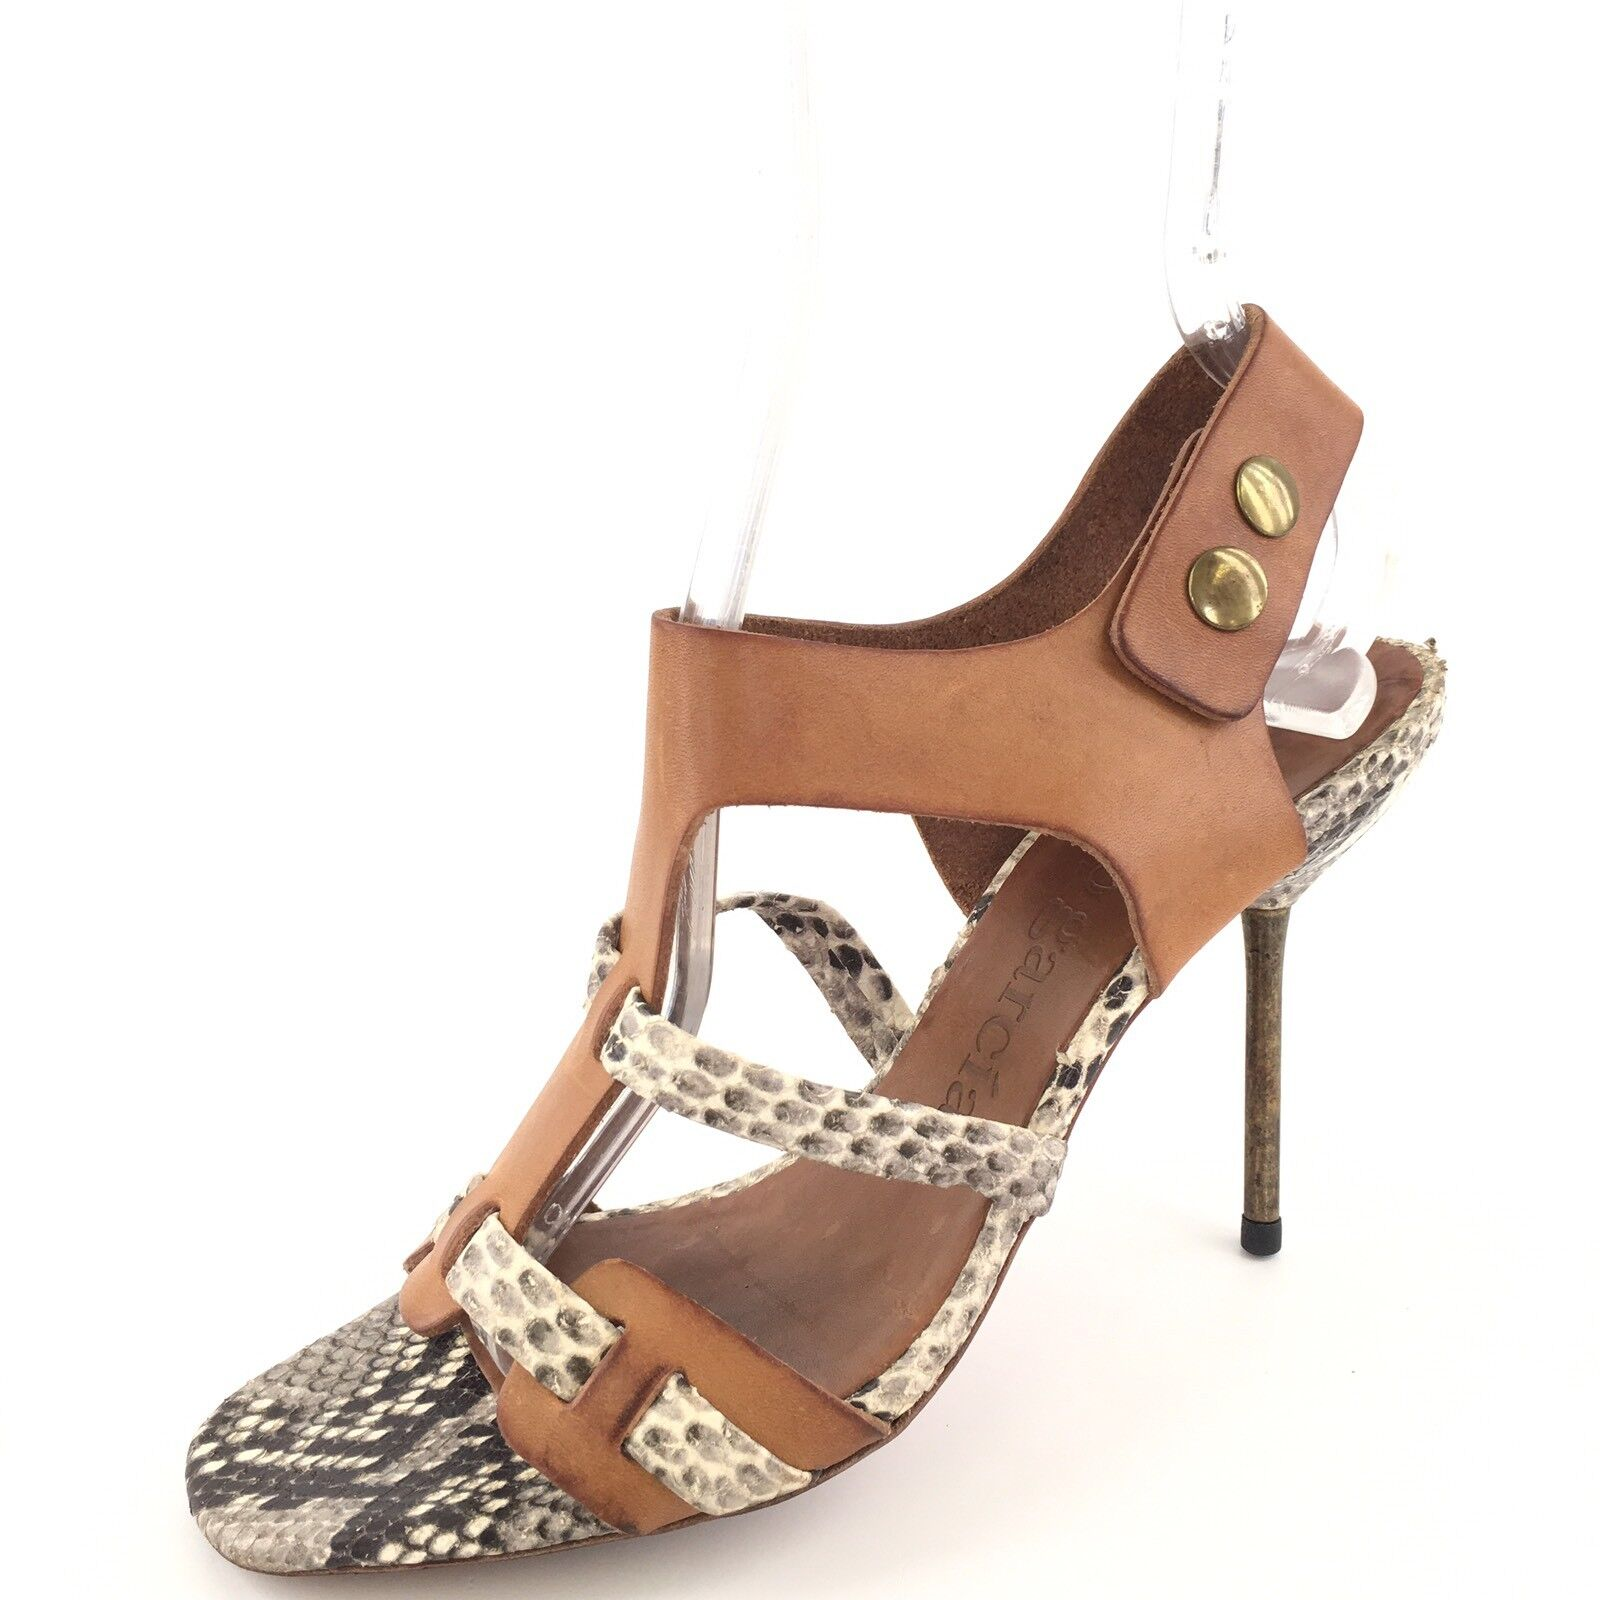 Pedro Garcia Maddy Brown Leather Python Print Open Toe Sandals Womens Size 38 M